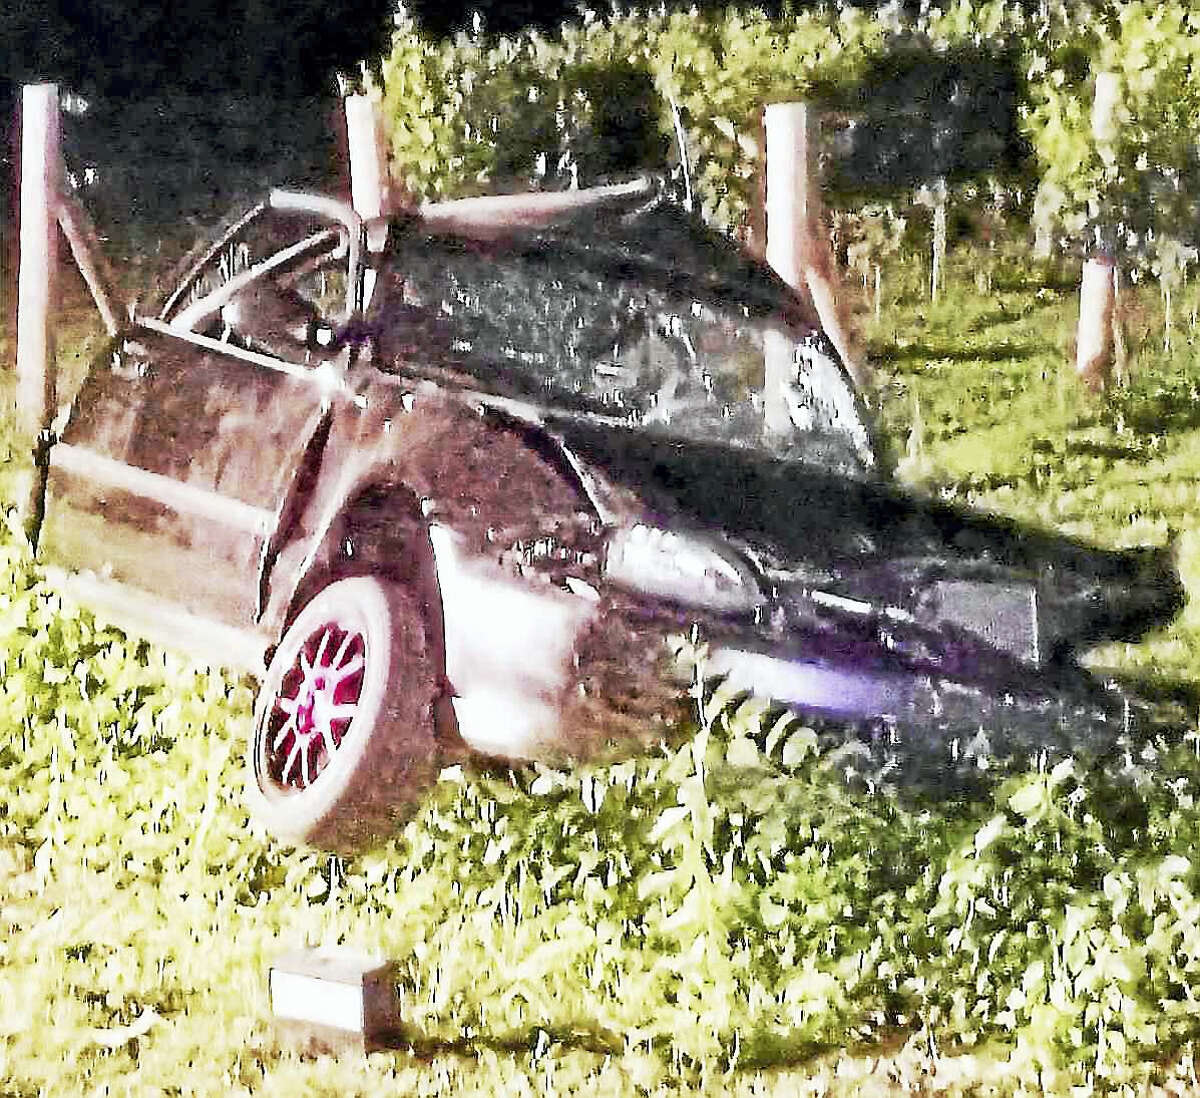 Abraham Evans, 22, of West Haven, died July 24 after he lost control of his car and crashed on Route 34 in Orange.